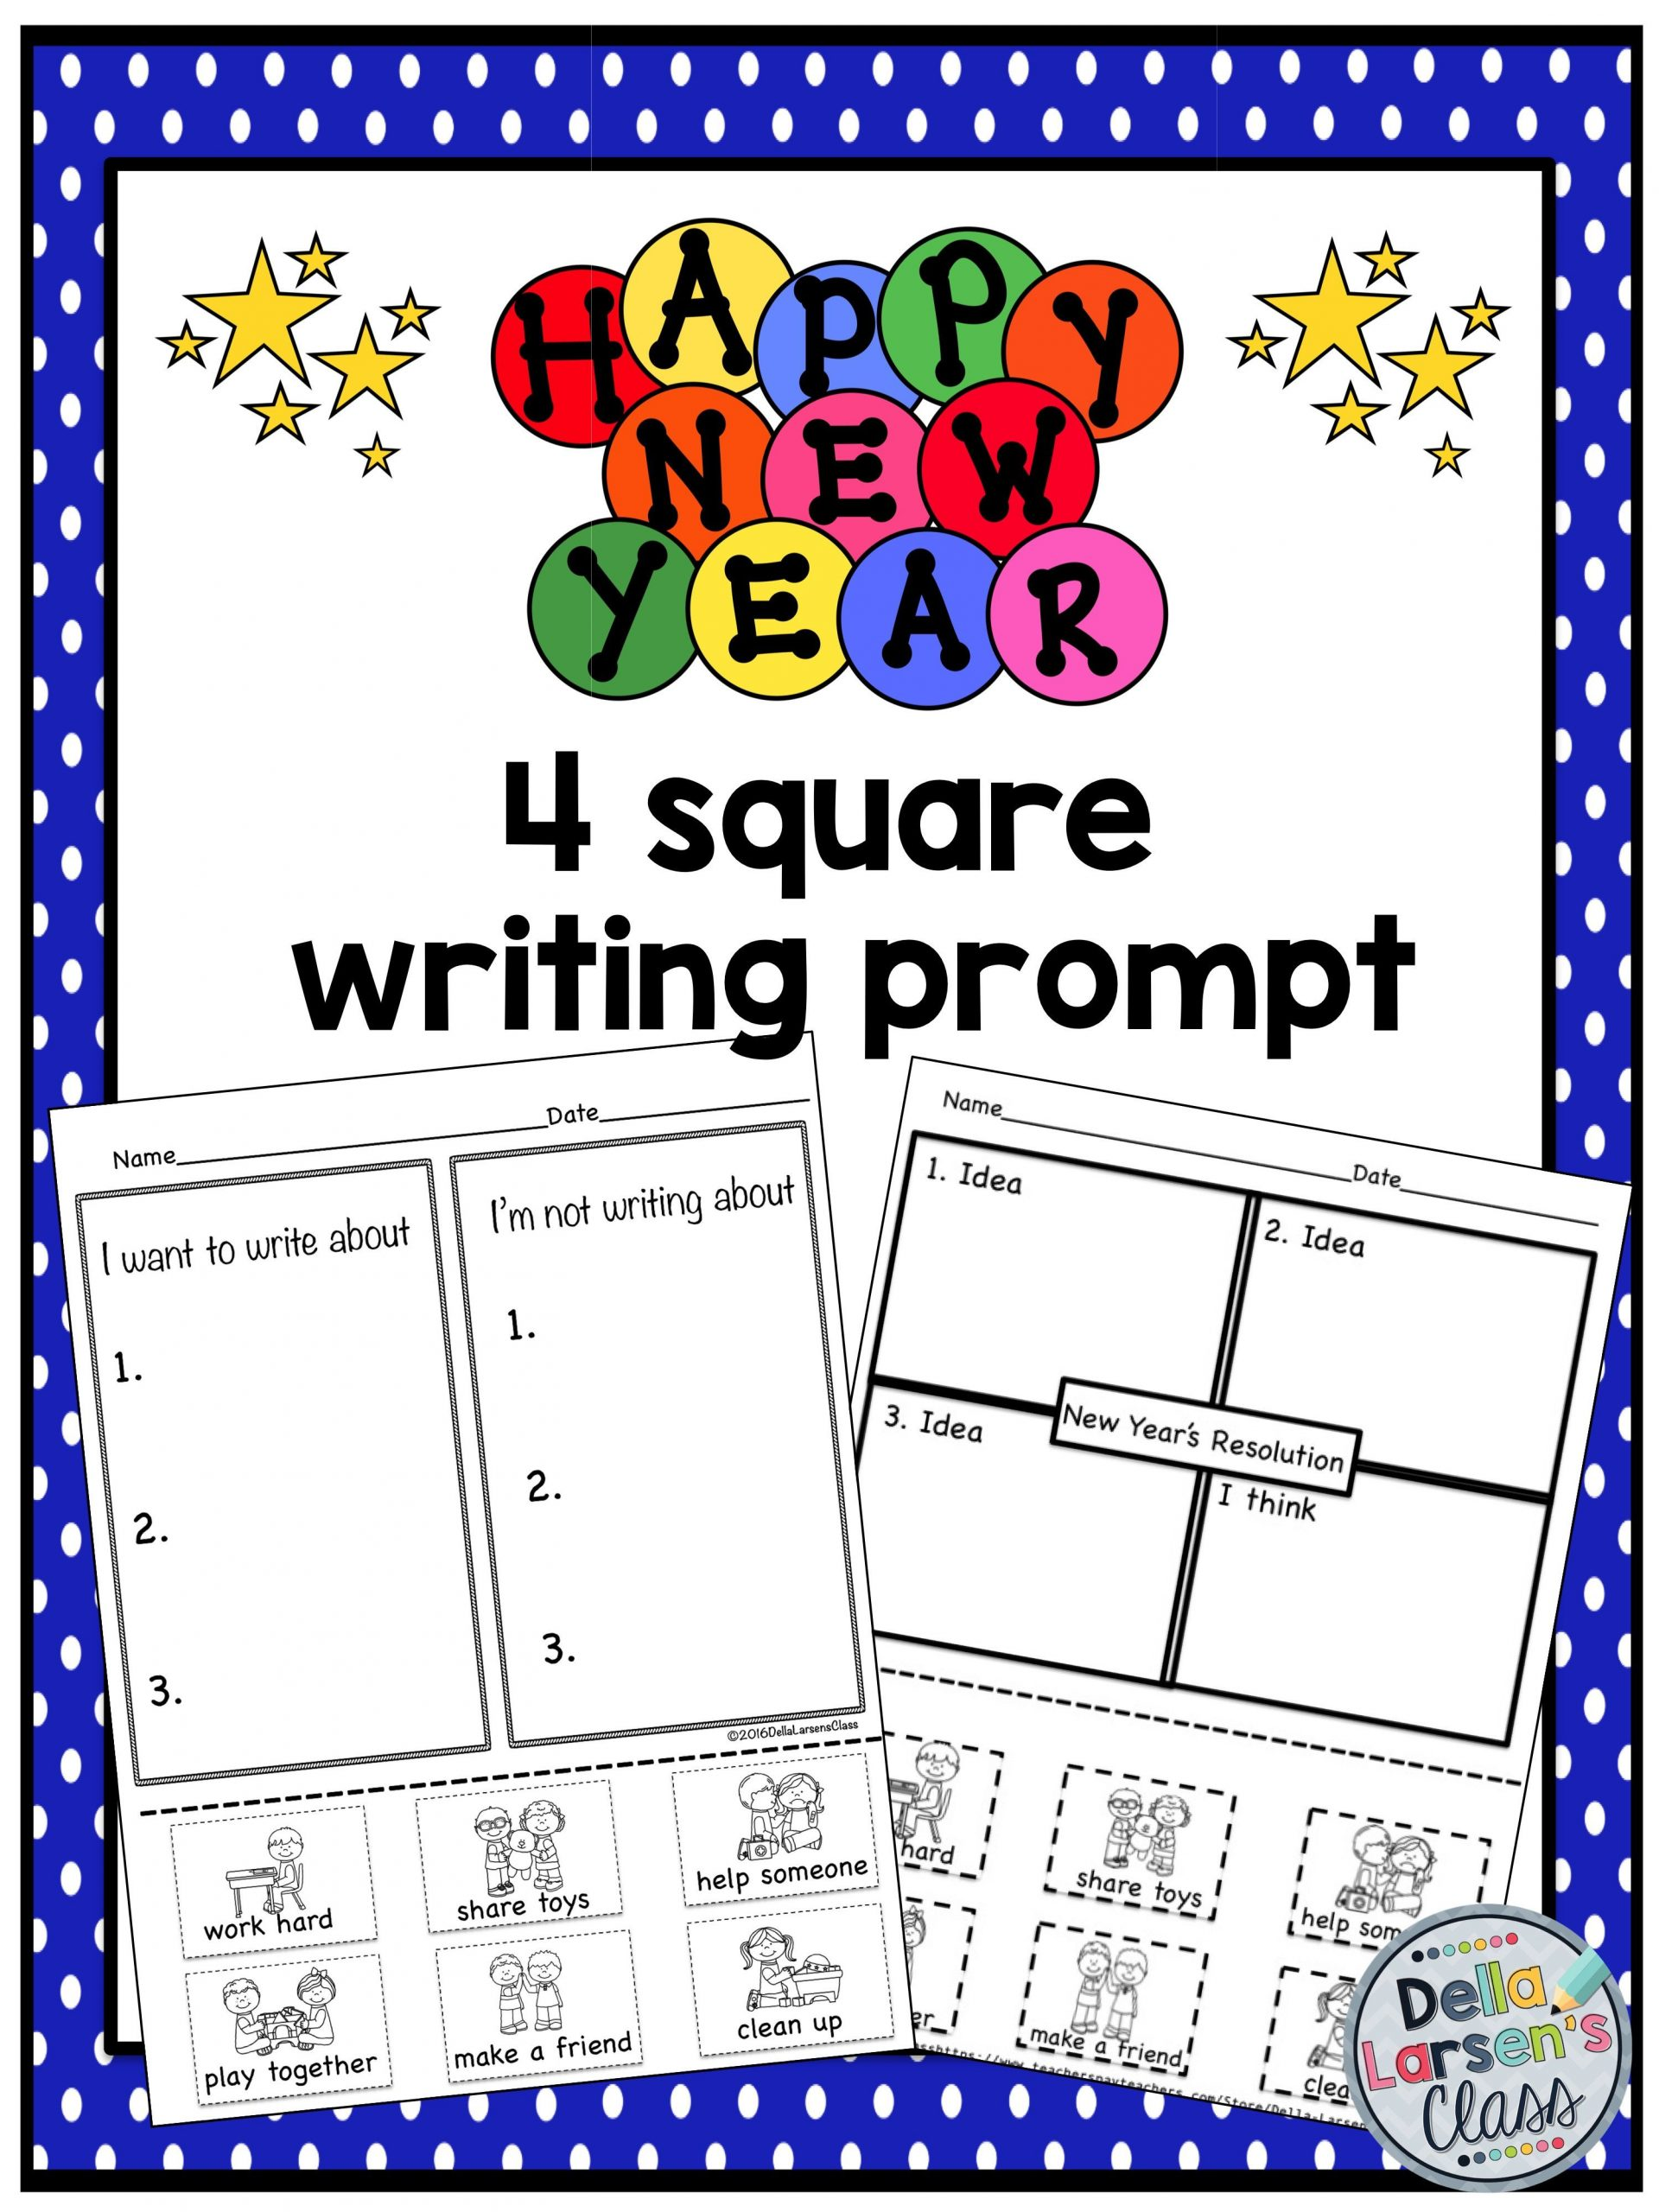 Four Square Writing Worksheets New Year S Resolution 4 Square Writing Prompt for